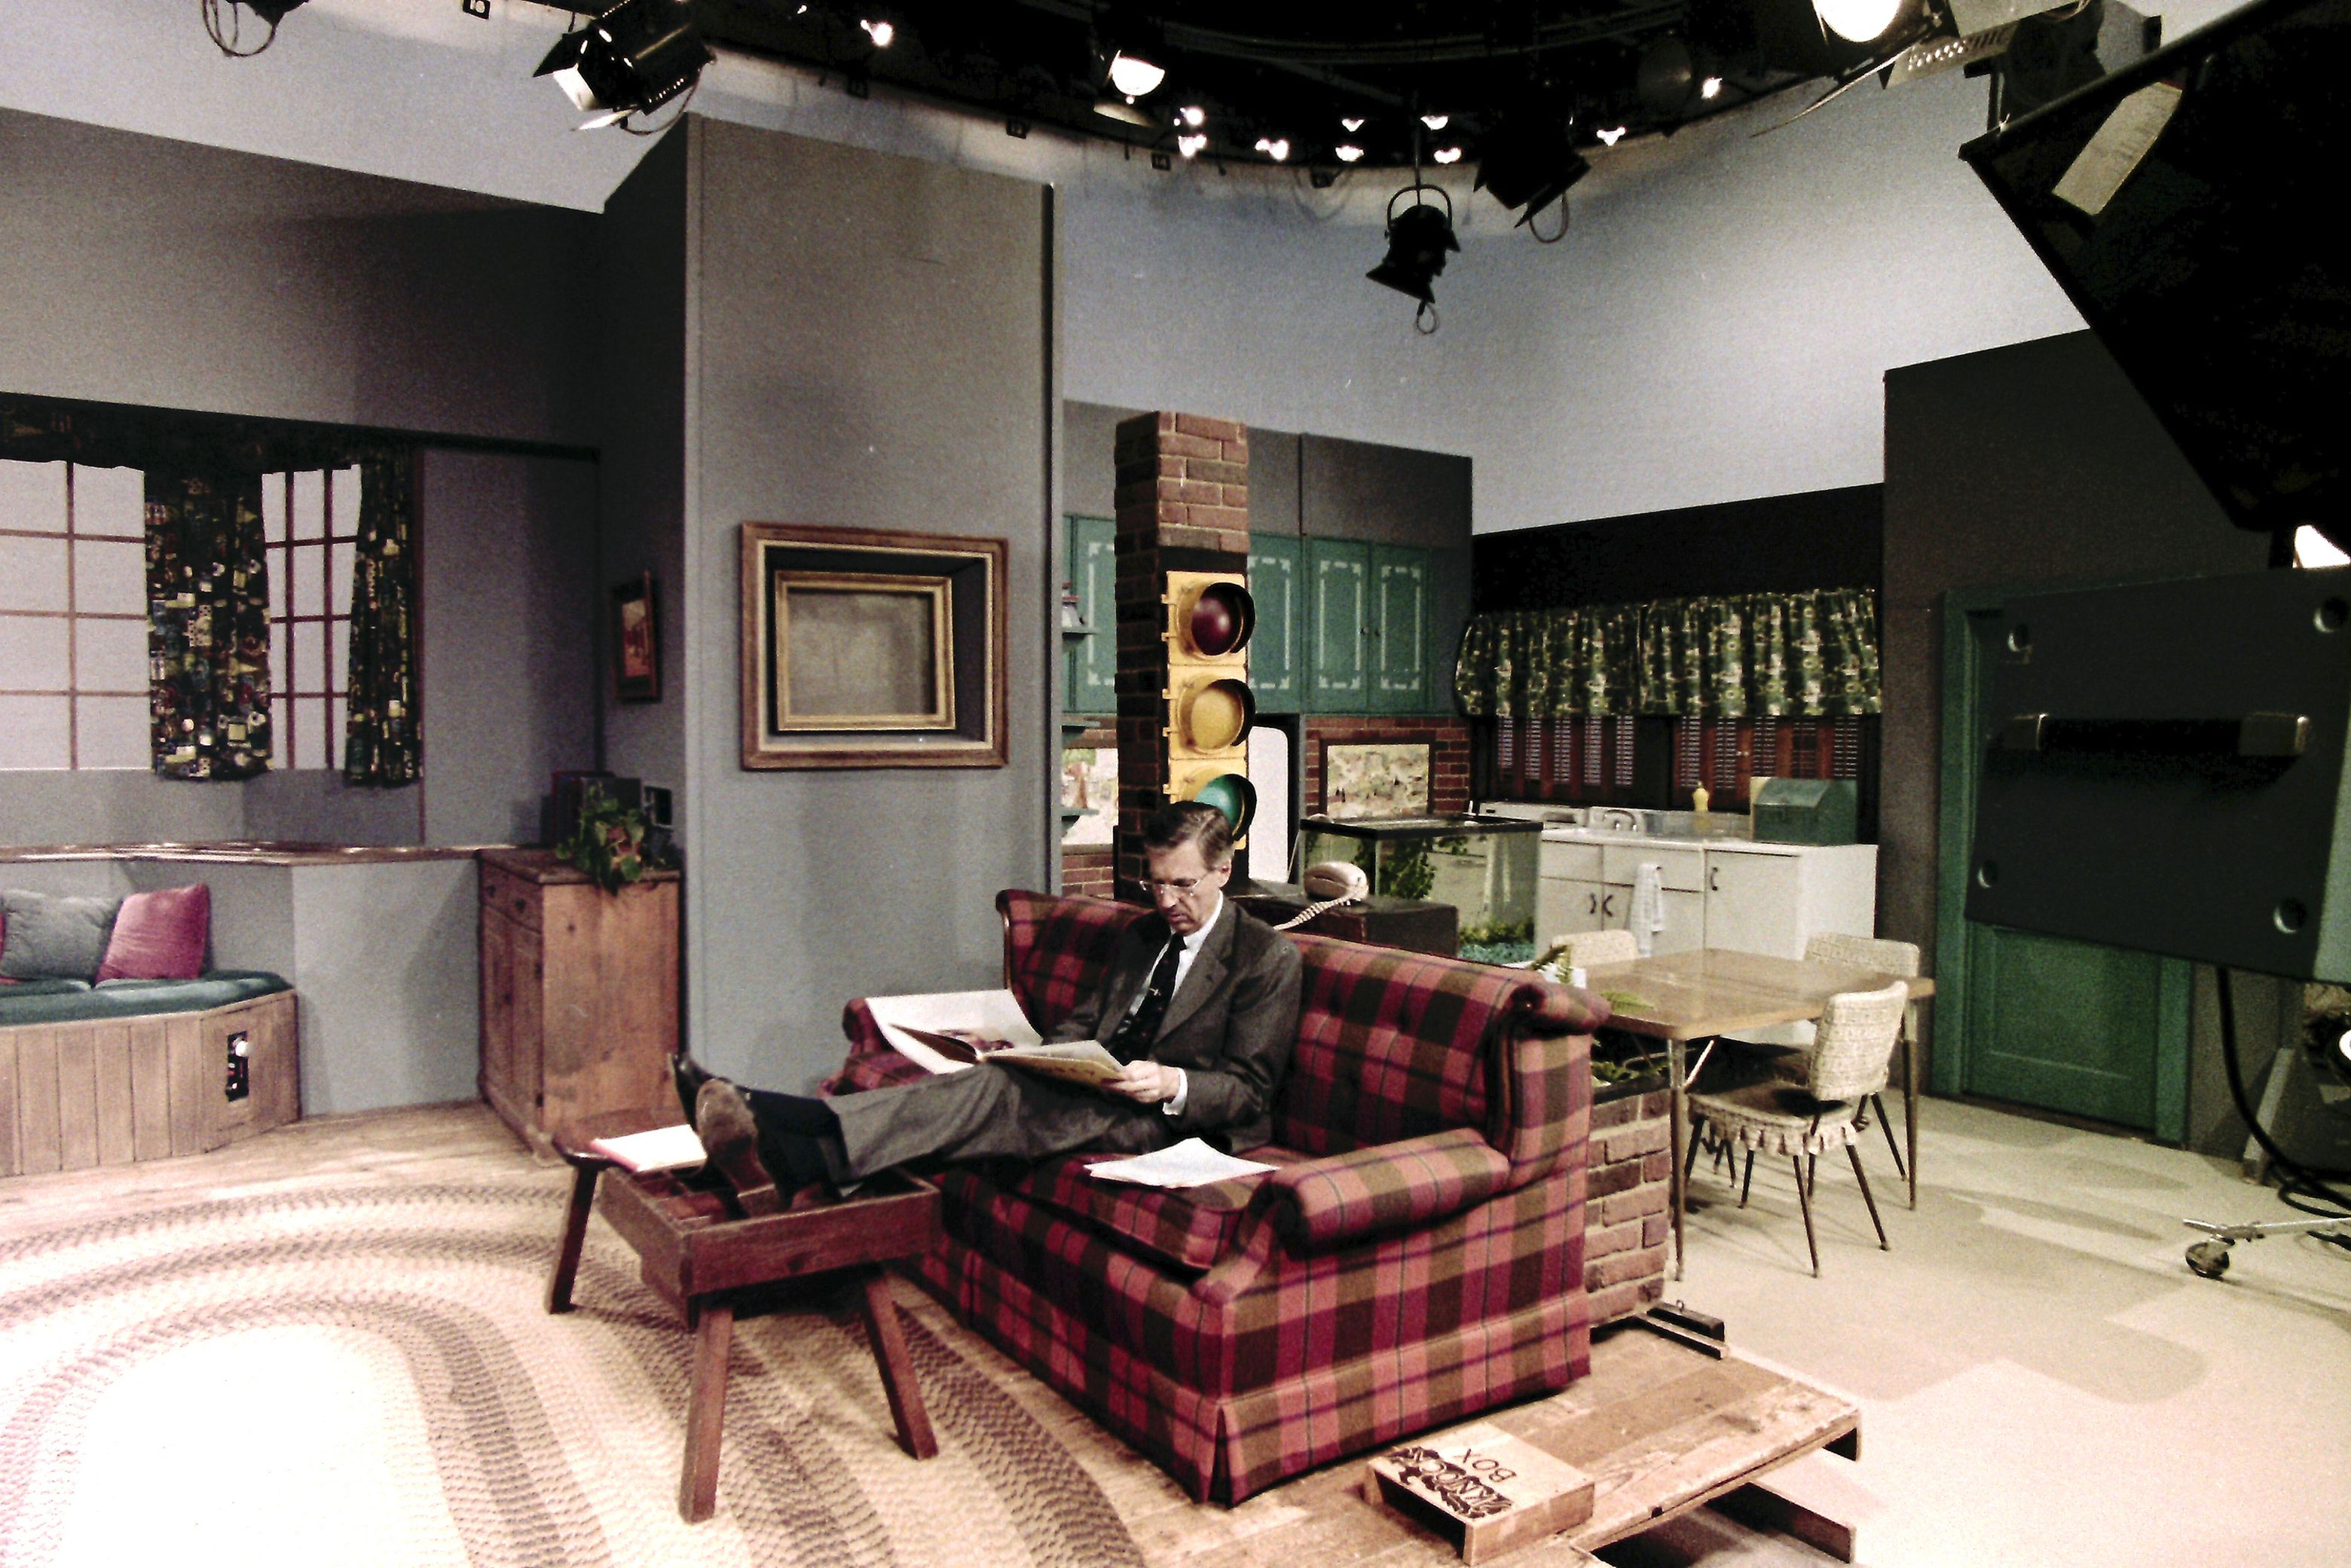 Mr Rogers Neighborhood Behind The Scenes Photos Emerge Bring Back Childhood Memories Masslive Com